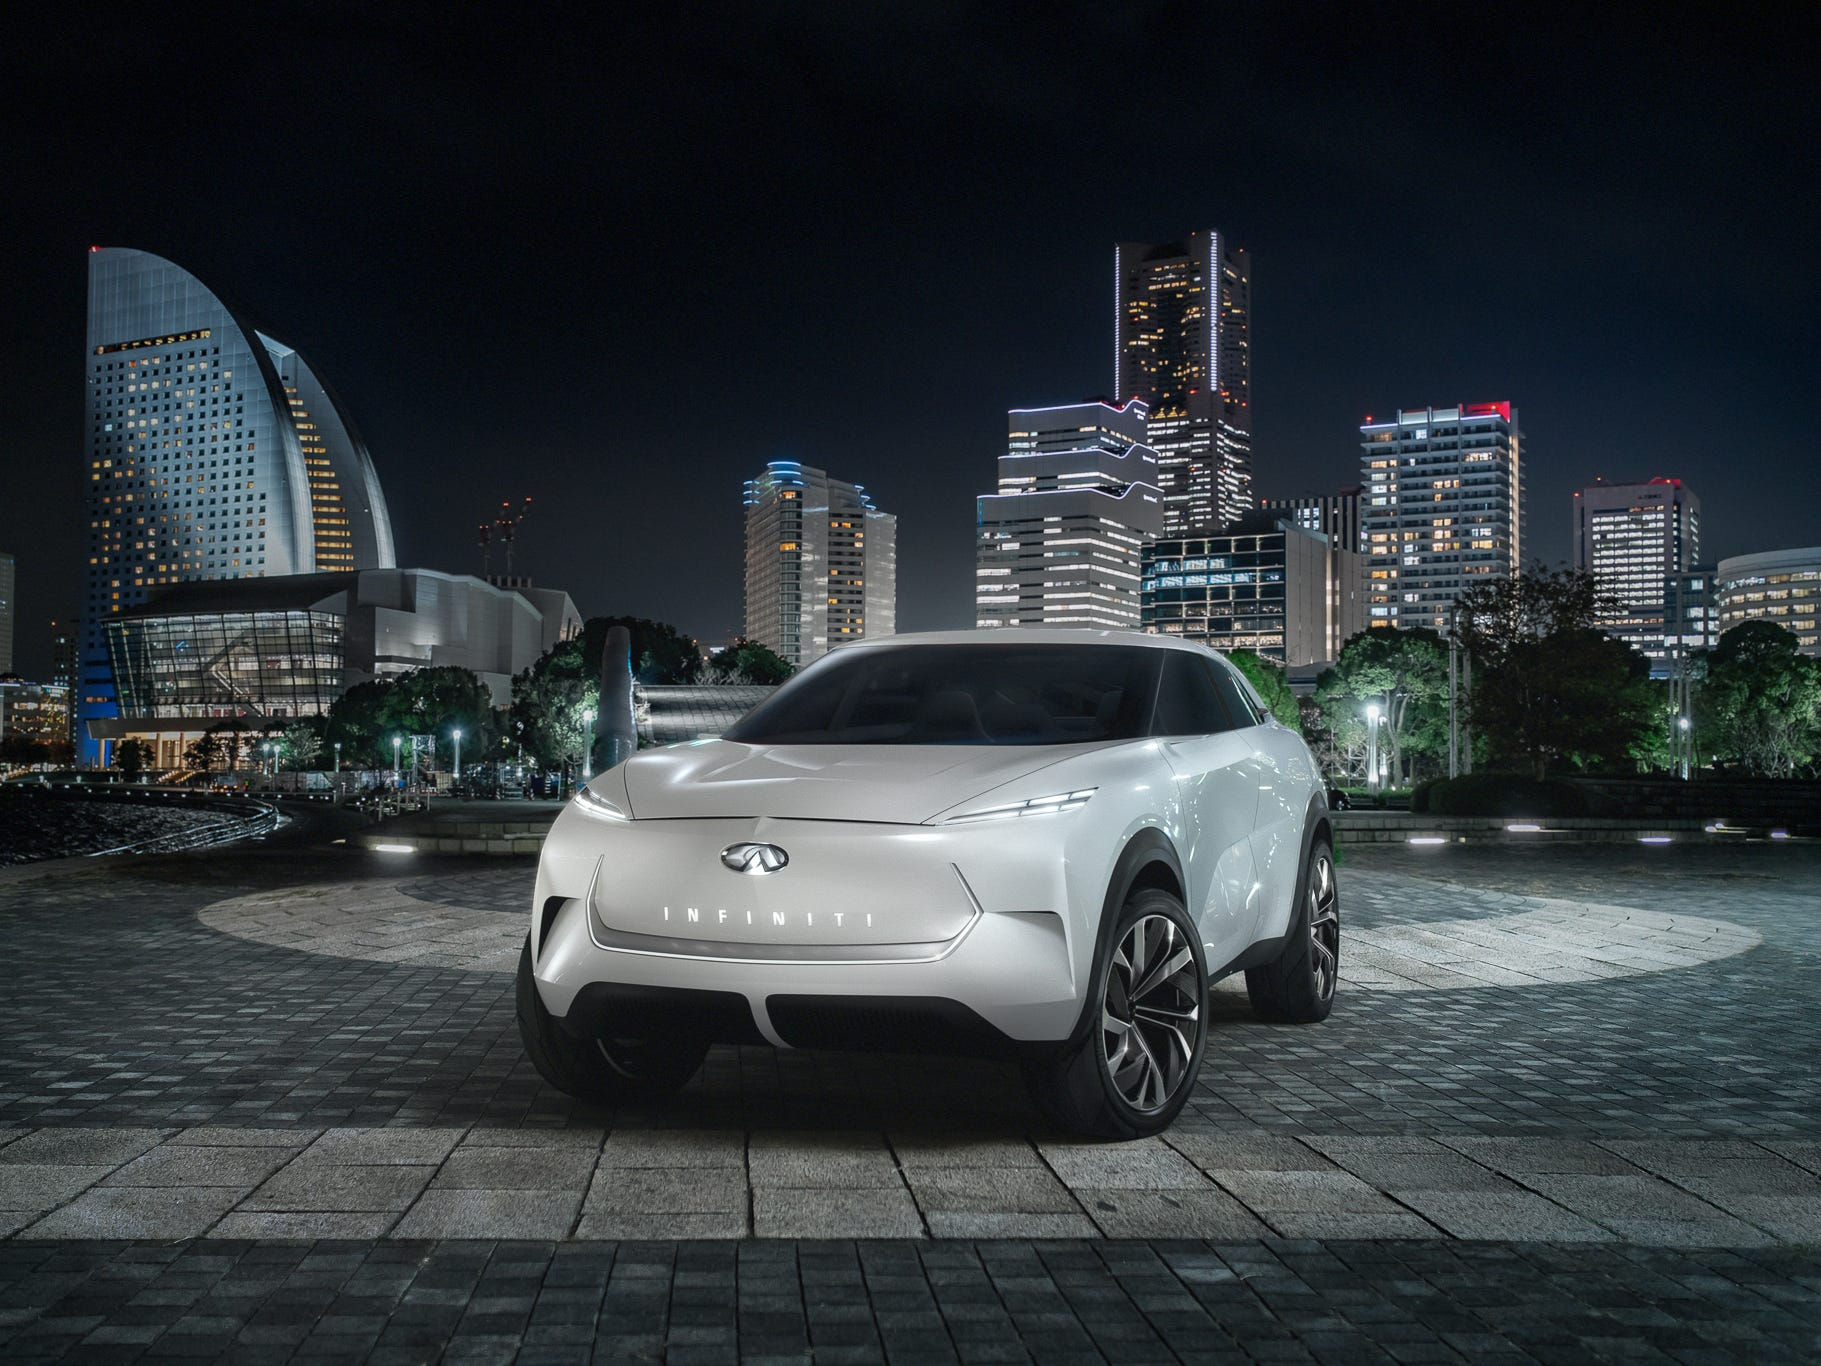 The Infiniti QX Inspiration electric SUV concept.